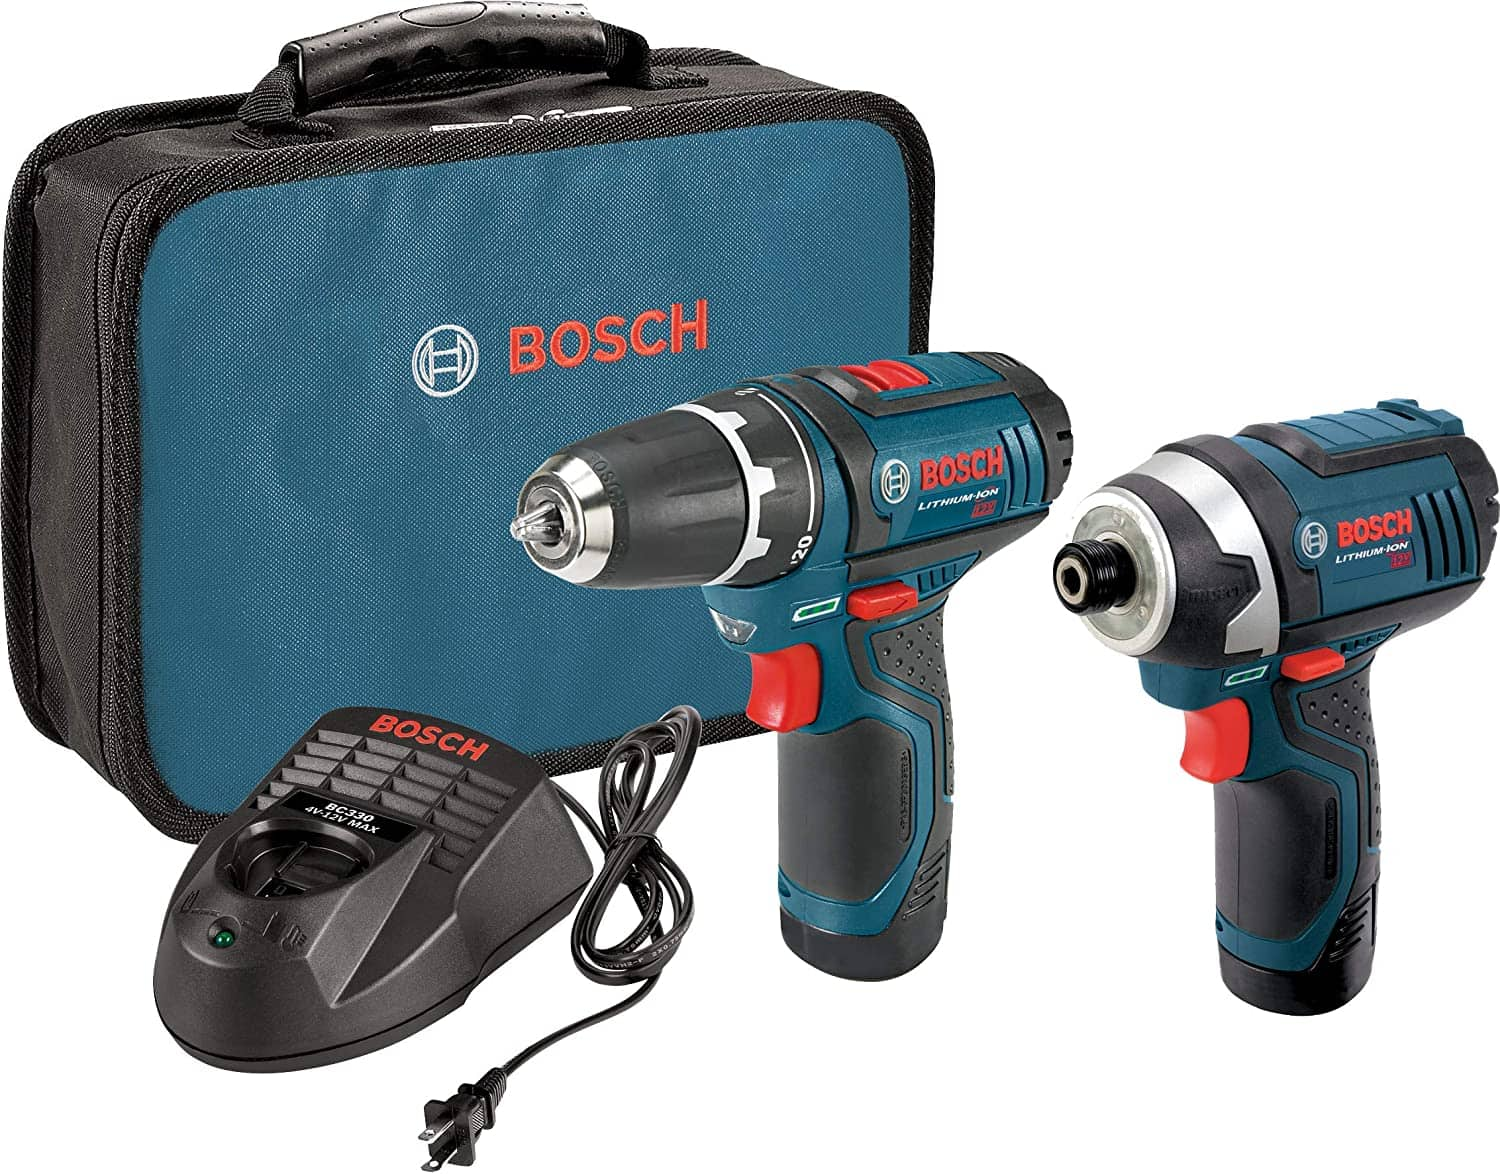 Amazon/Bosch Tool Promo - Save $20 on $100 of Select Bosch Tools